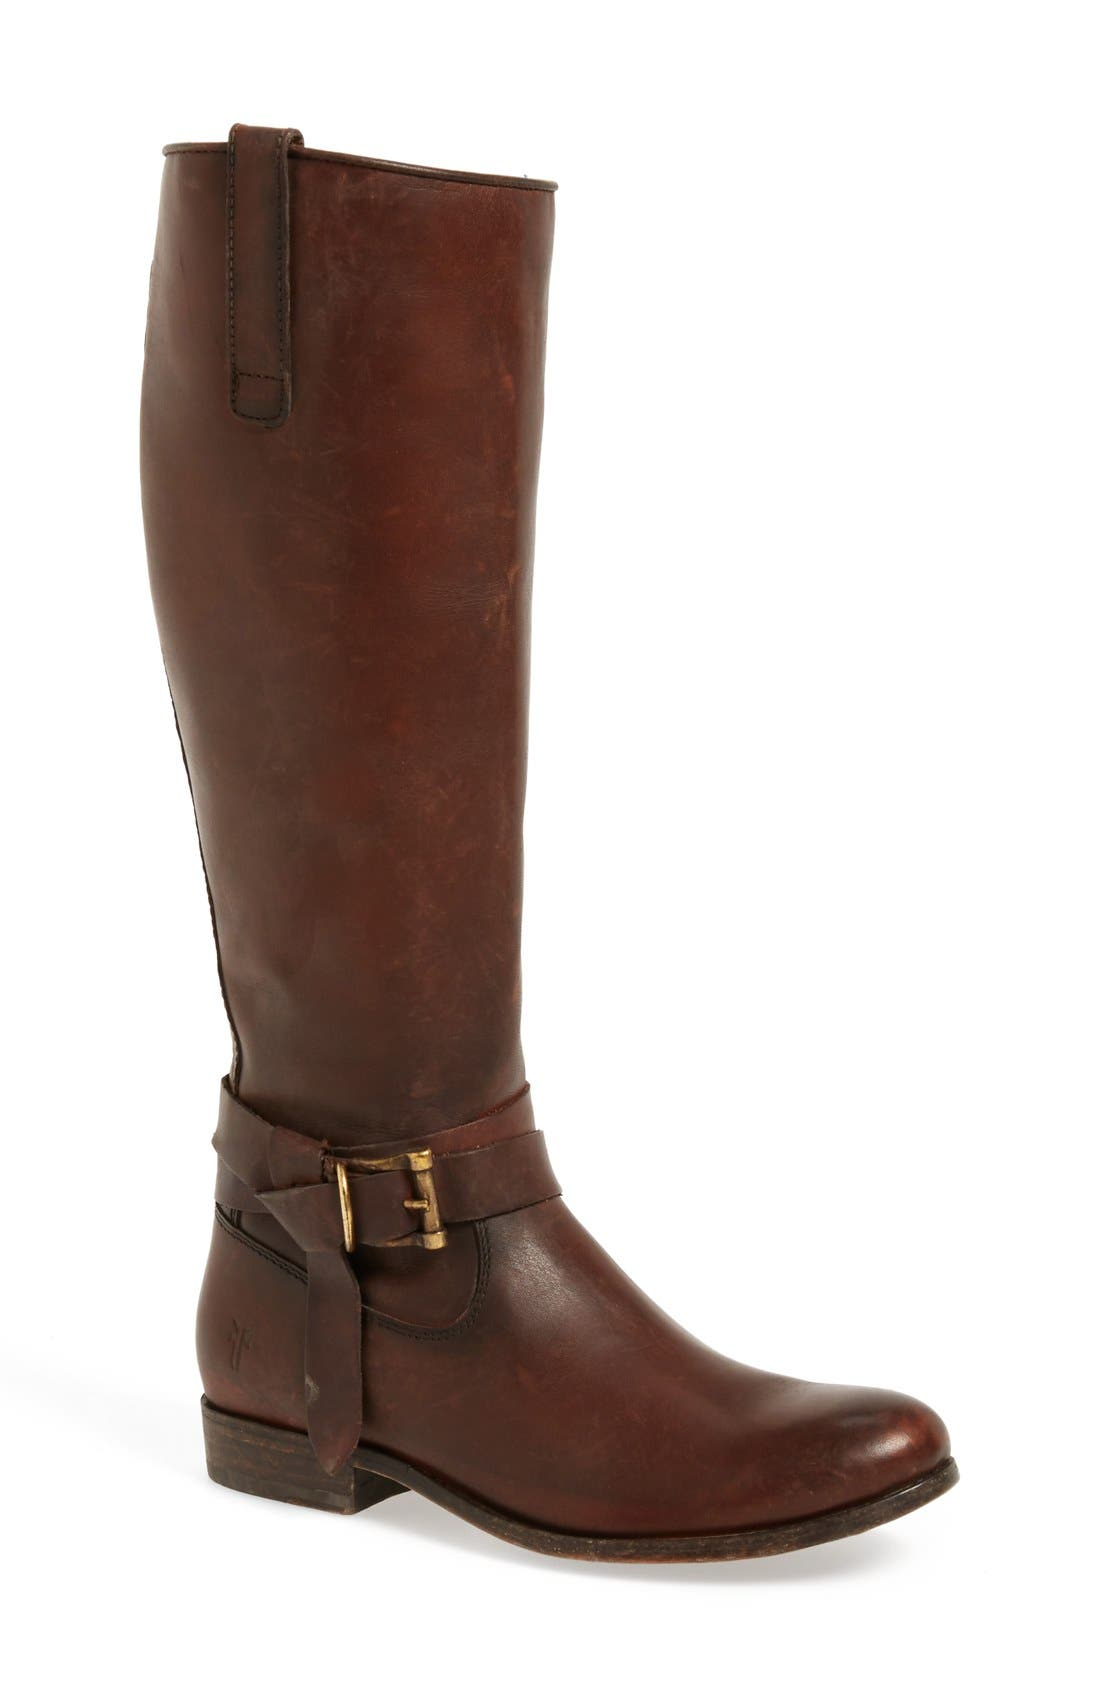 Main Image - Frye 'Melissa Knotted' Tall Boot (Women)